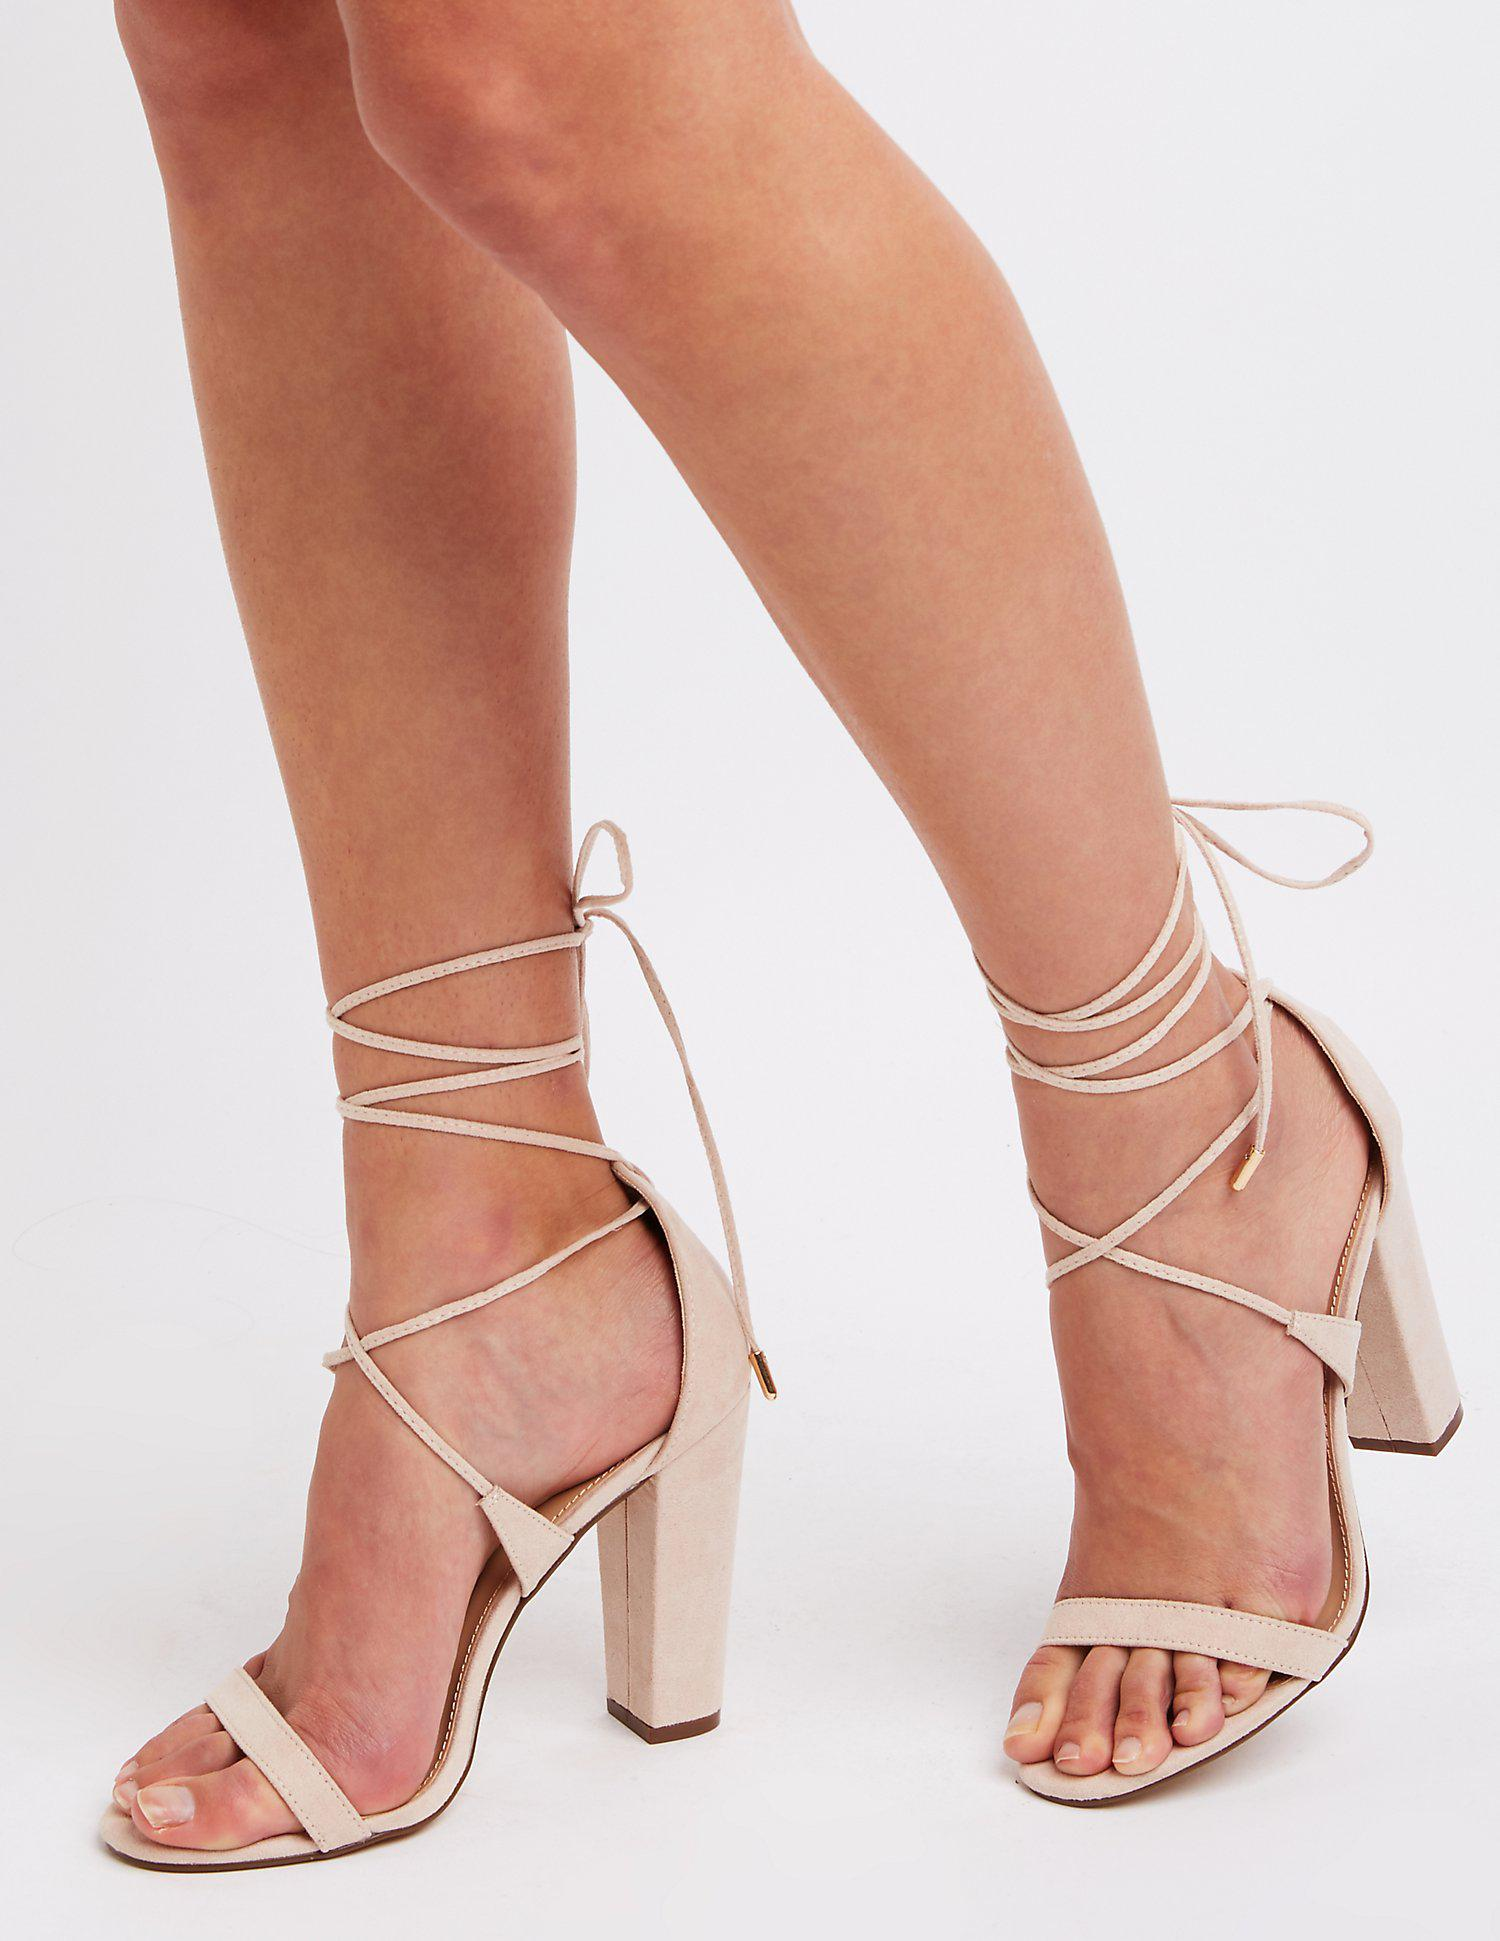 34f6437b67f7 Lyst - Charlotte Russe Ankle Wrap Block Heel Sandals in Natural ...